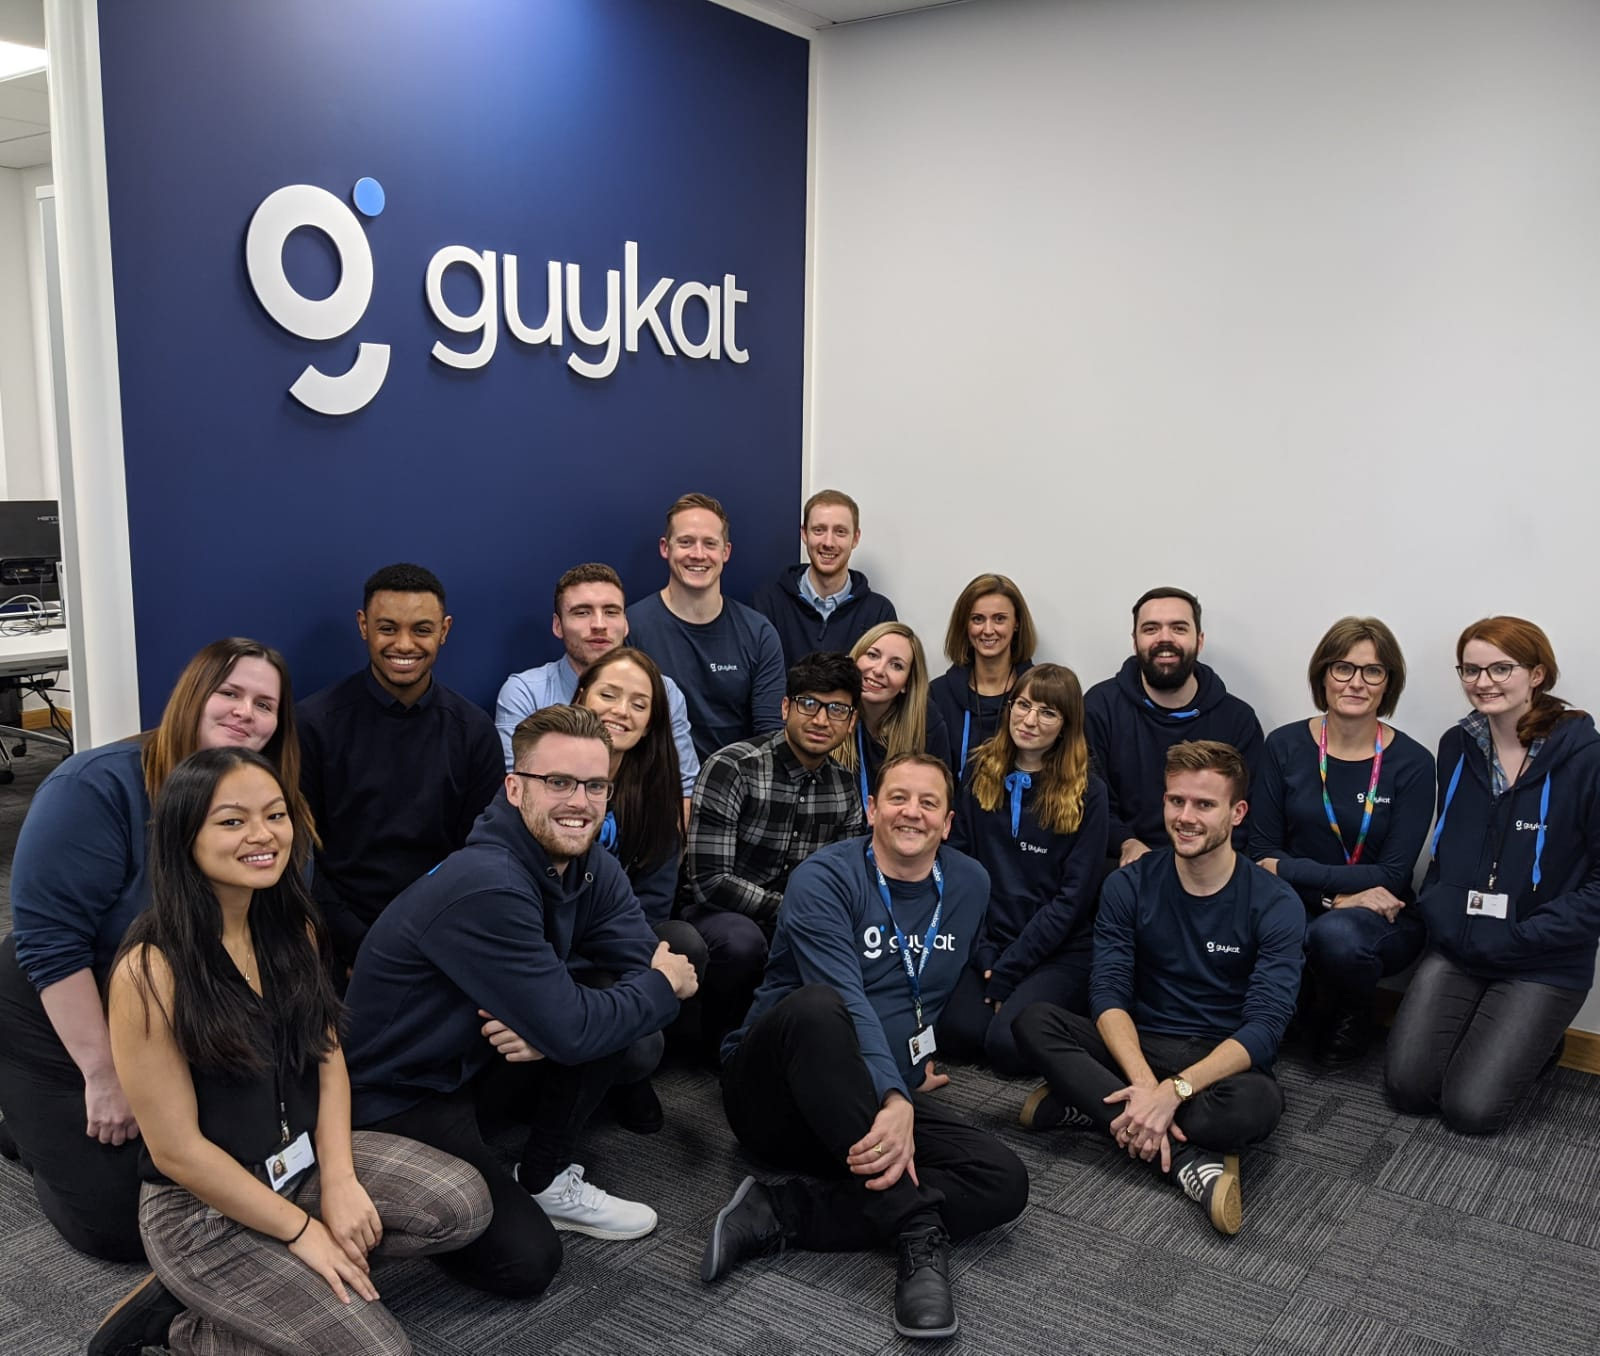 e-learning firm GuyKat opens new HQ in Birmingham